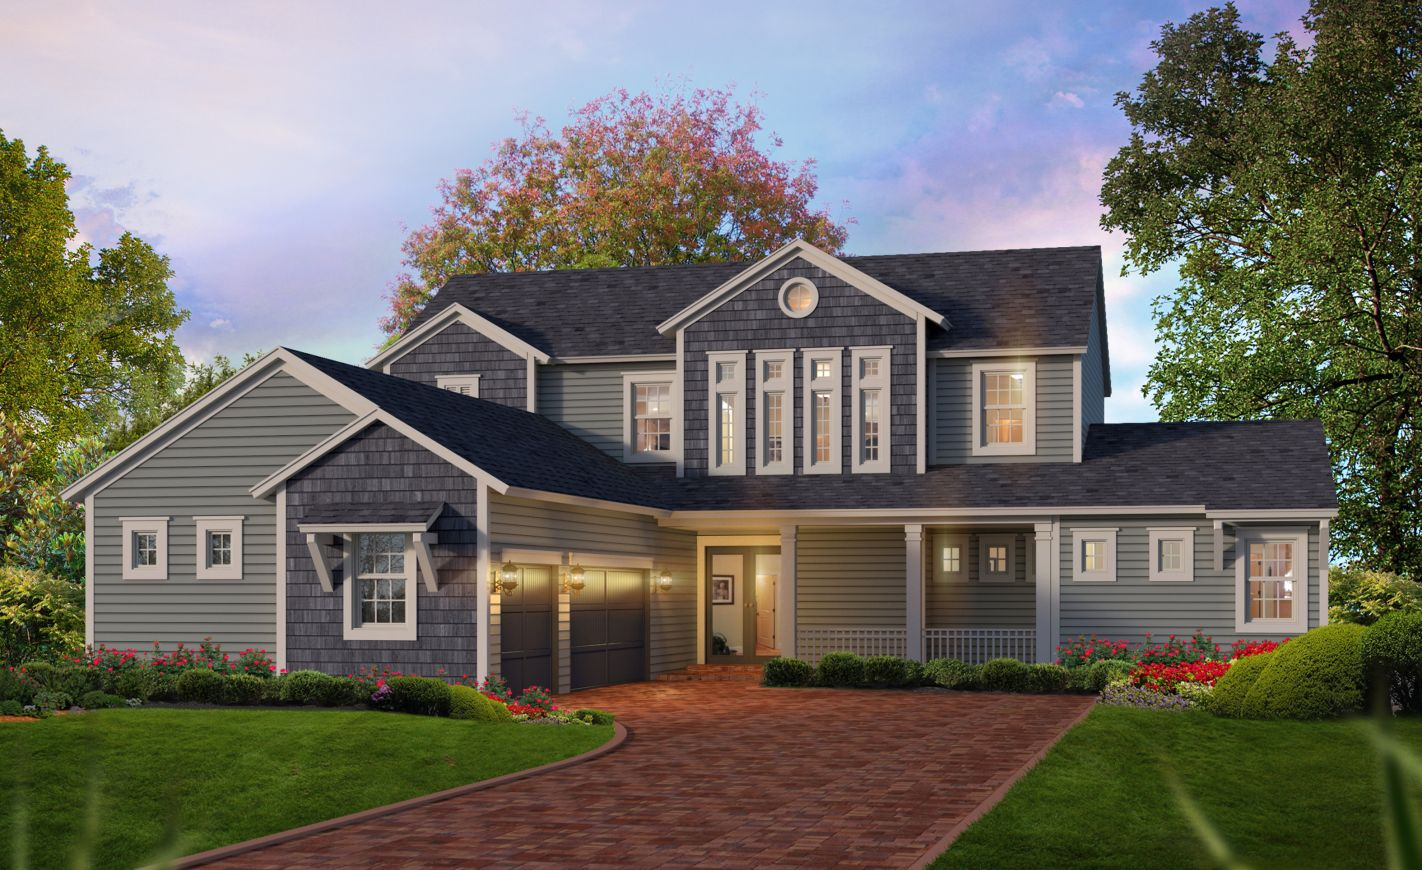 Nocatee Homes for Sale - The Marabella at Nocatee